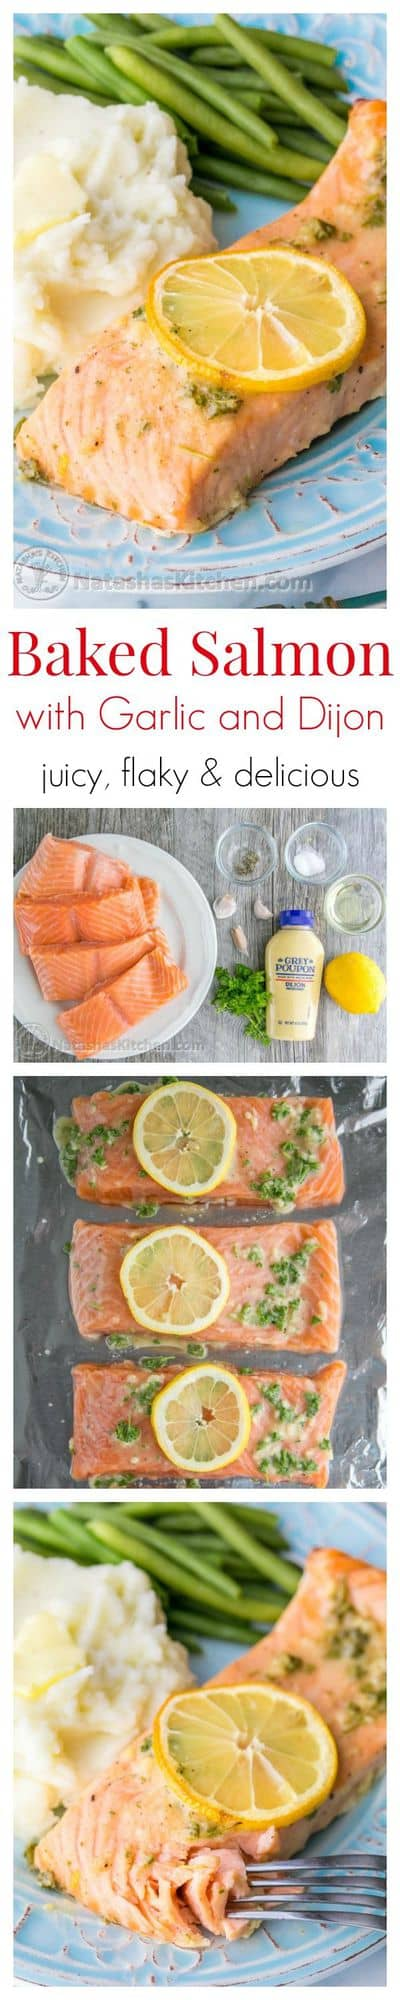 Our Favorite Baked Salmon Recipe  Juicy, Flaky And Super Delicious A 5